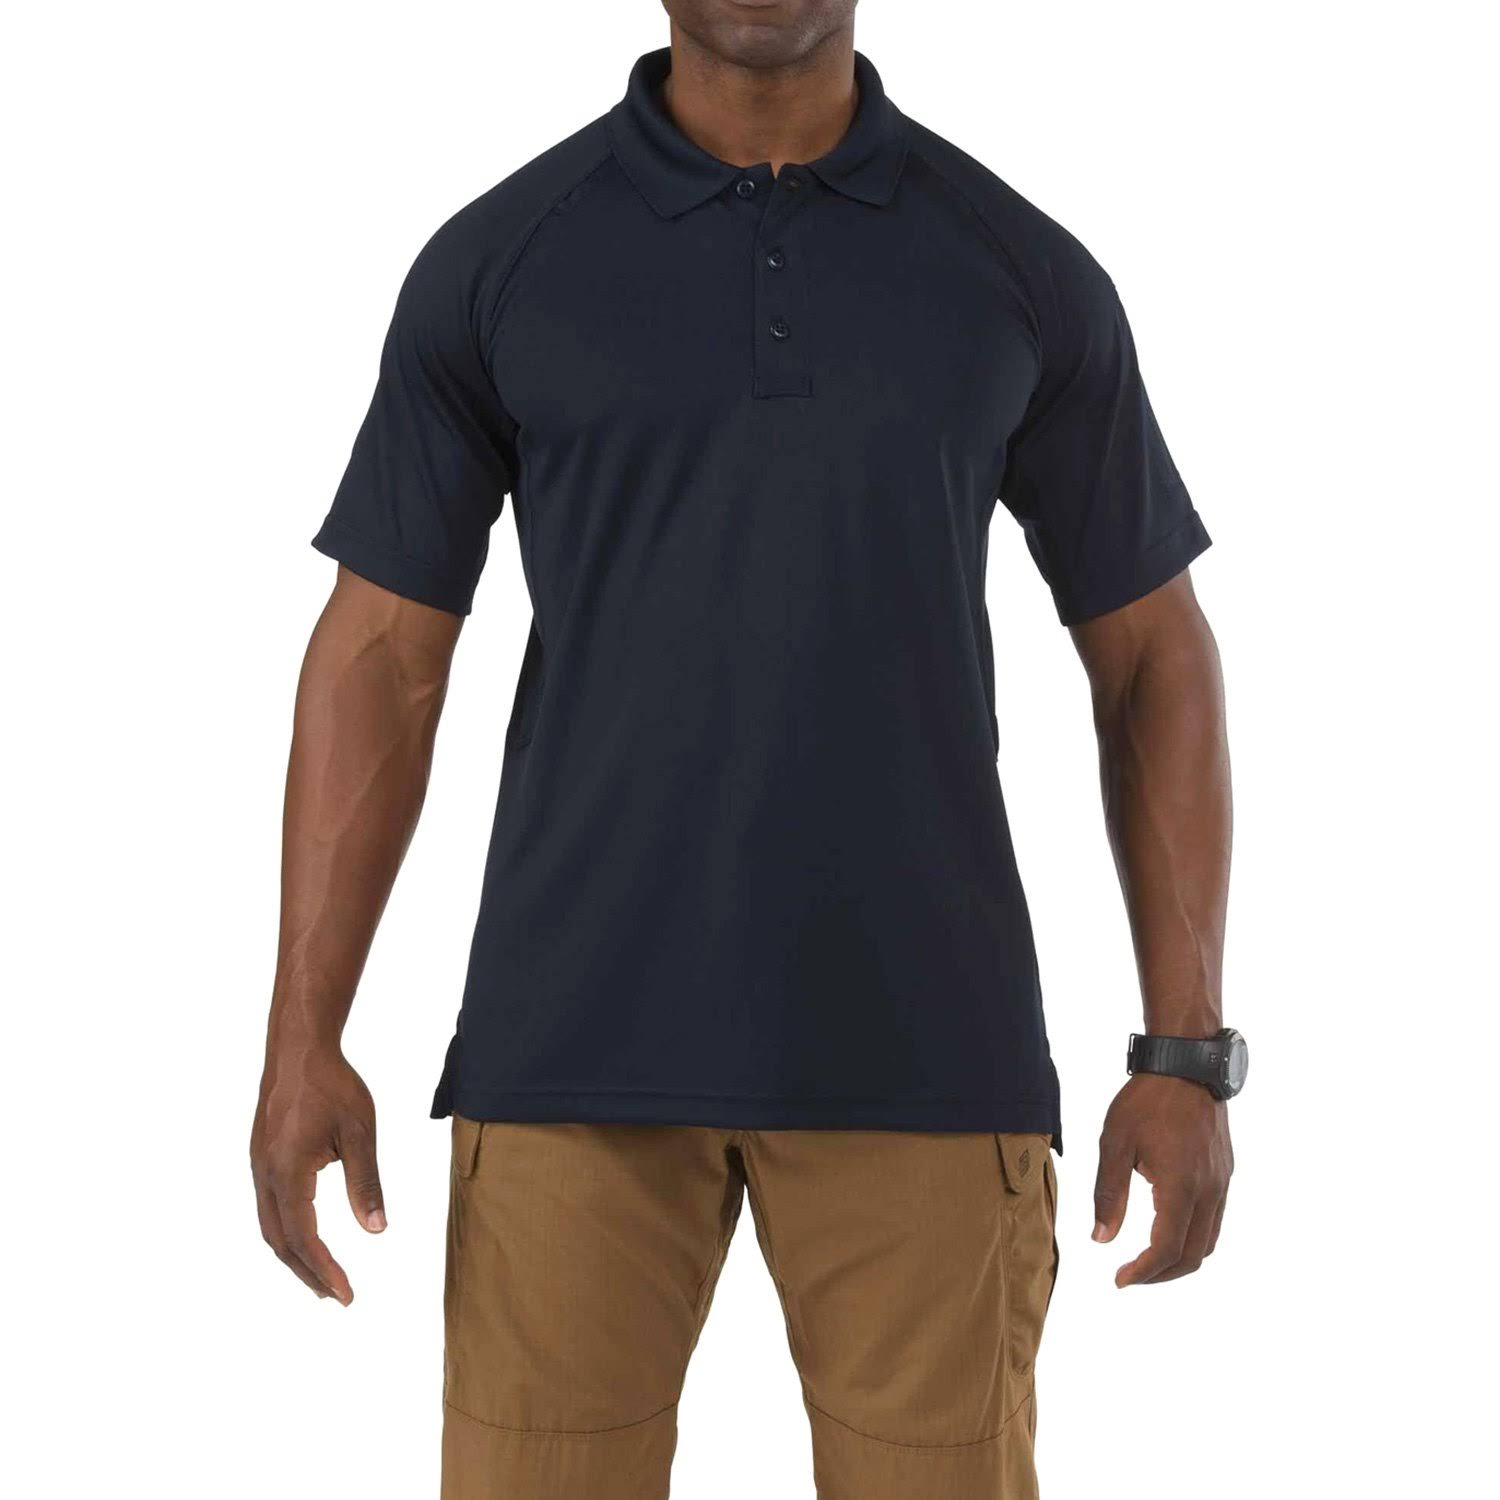 5.11 Men's Performance Polo Short Sleeve Shirt - Dark Navy